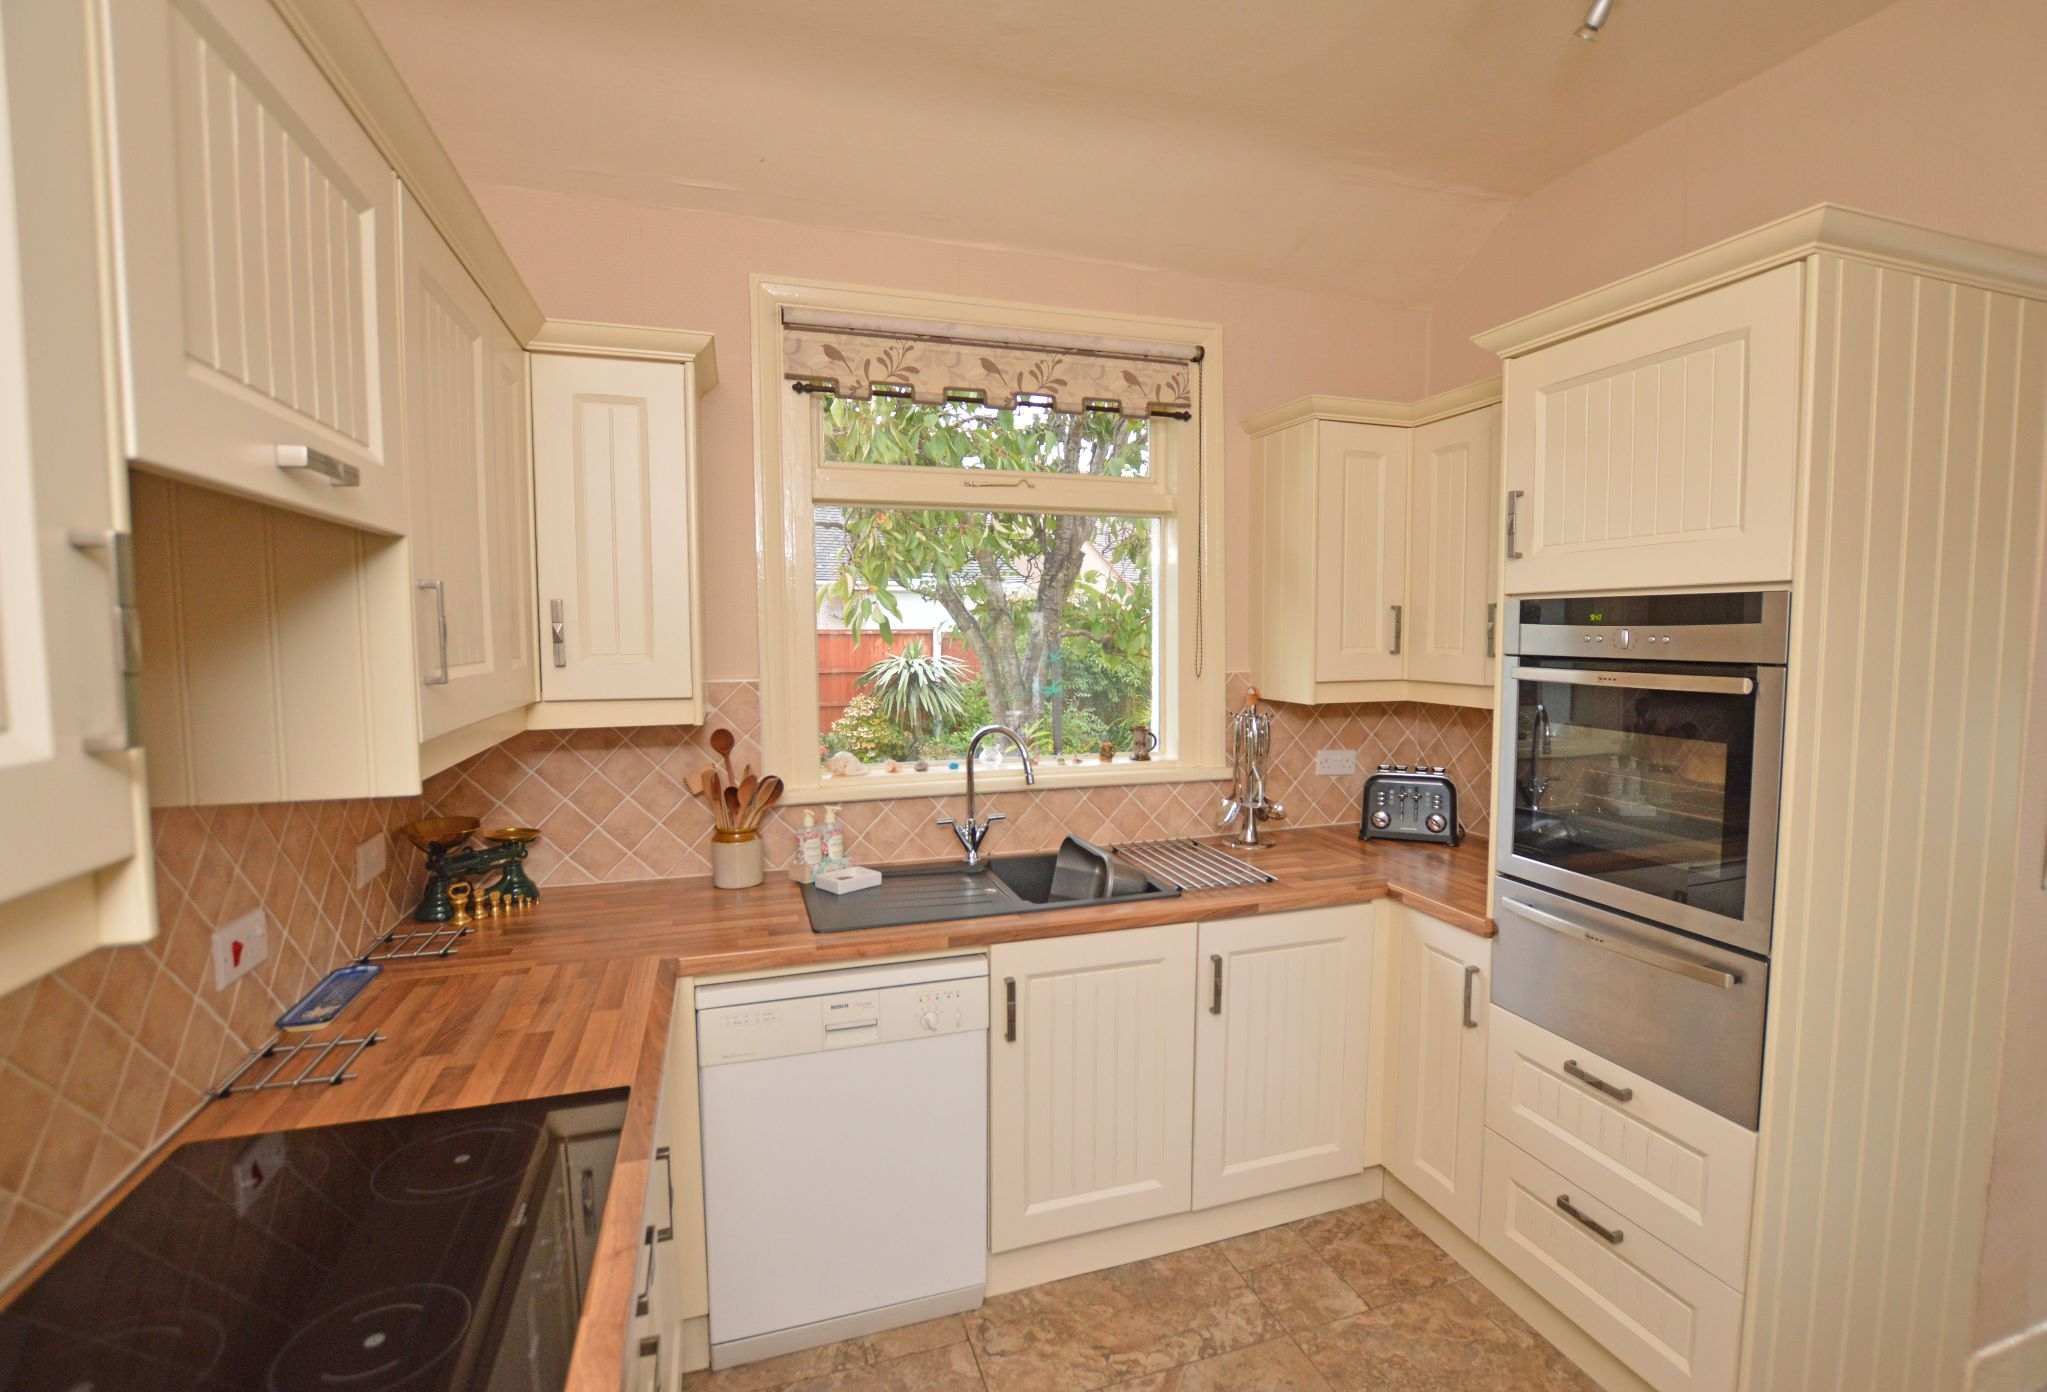 4 bedroom detached house For Sale in Abergele - Kitchen